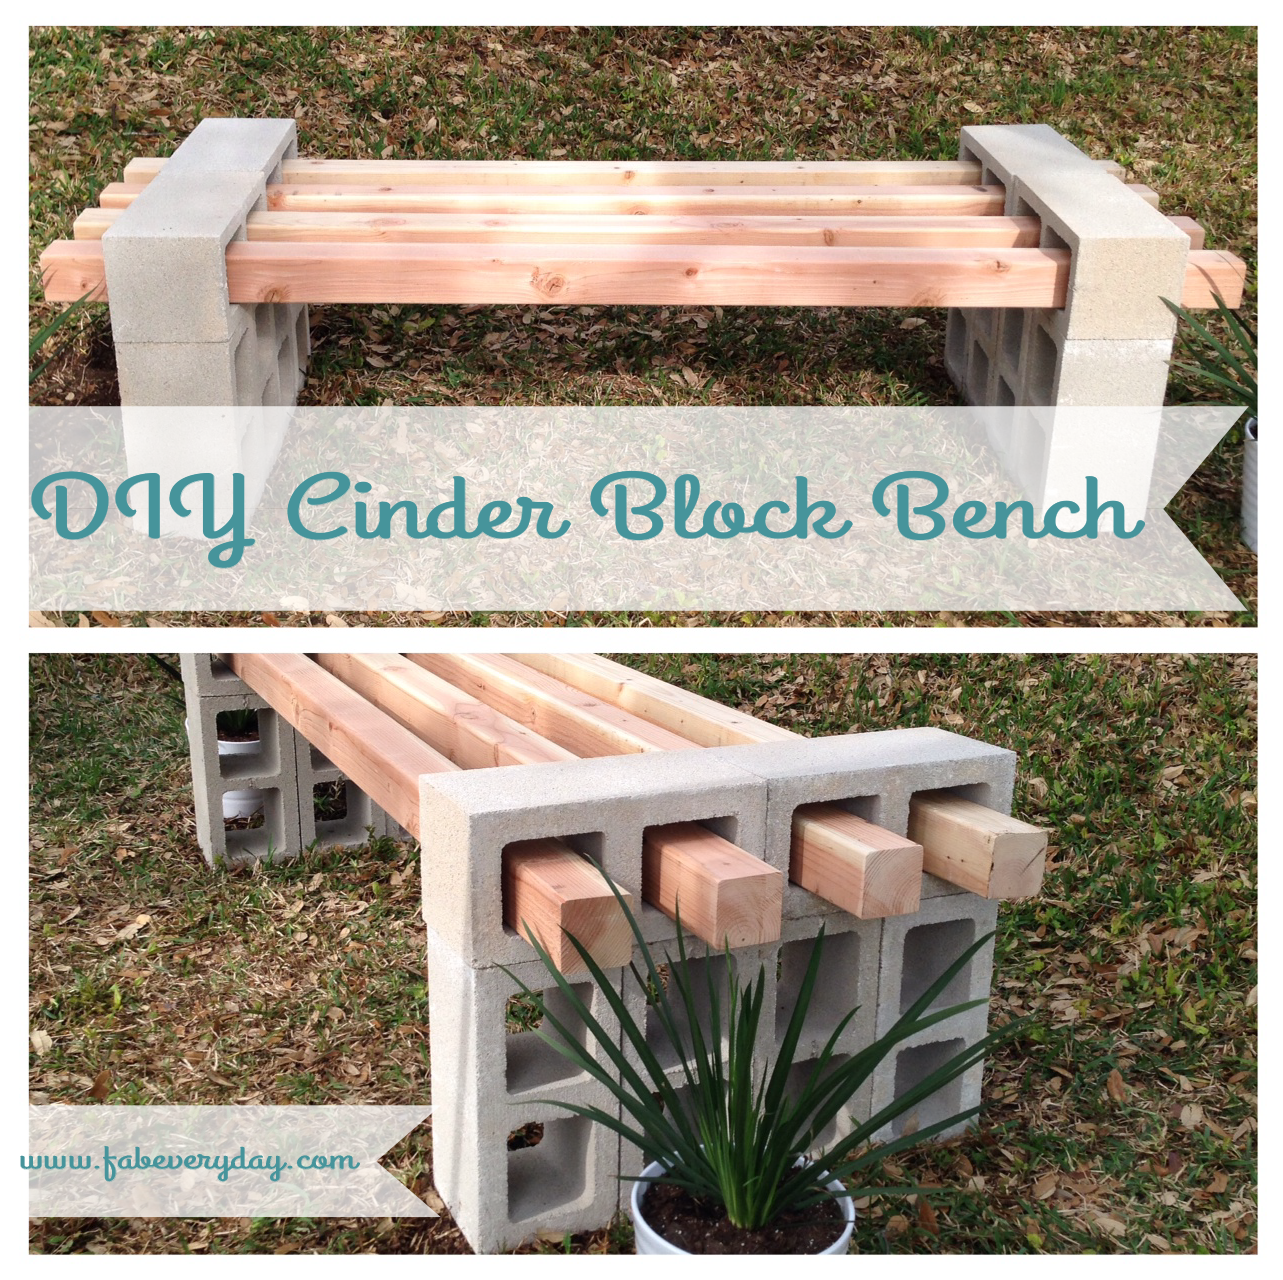 cinder block bench fab everyday | because everyday life should be fabulous | WGQEEWU